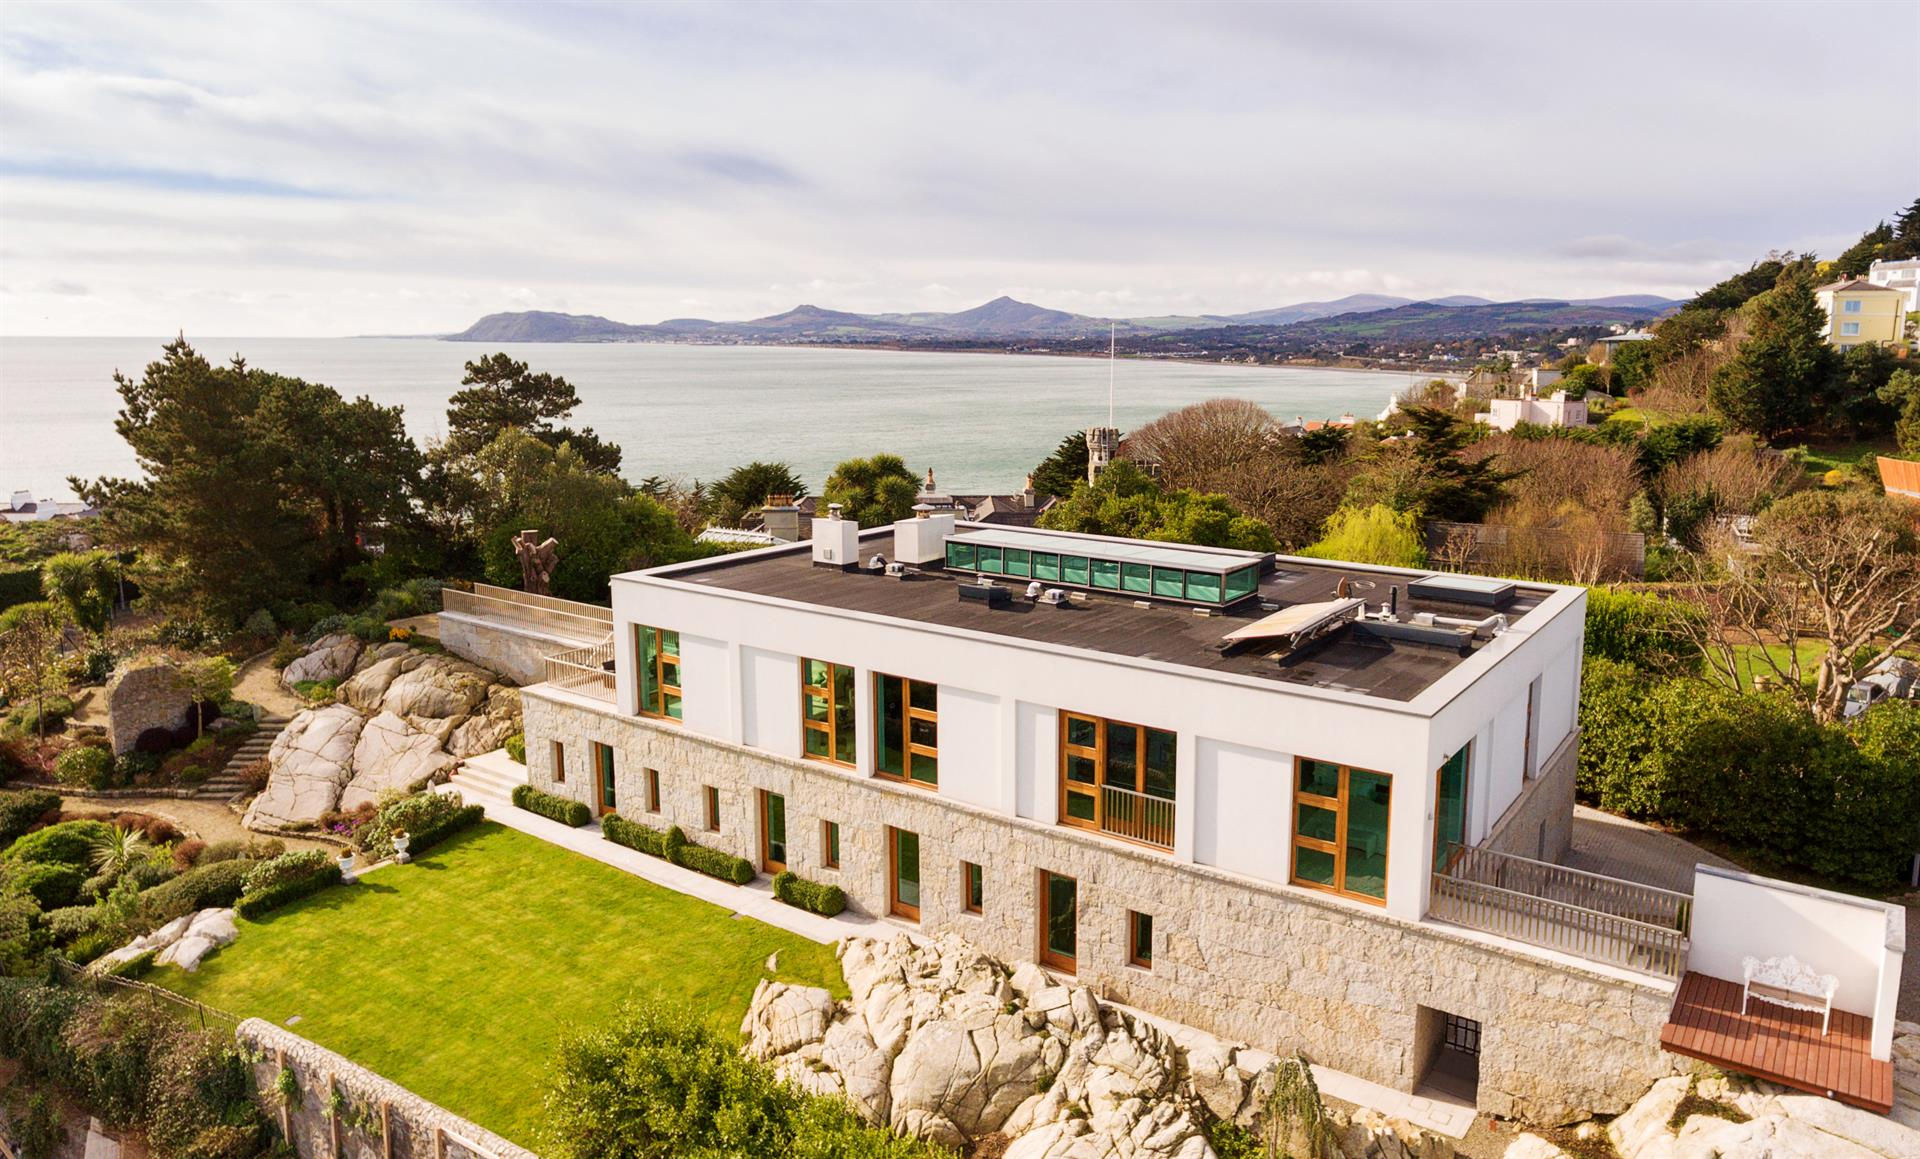 Single Family Home For Sale At Mount Alverno Dalkey, Ireland